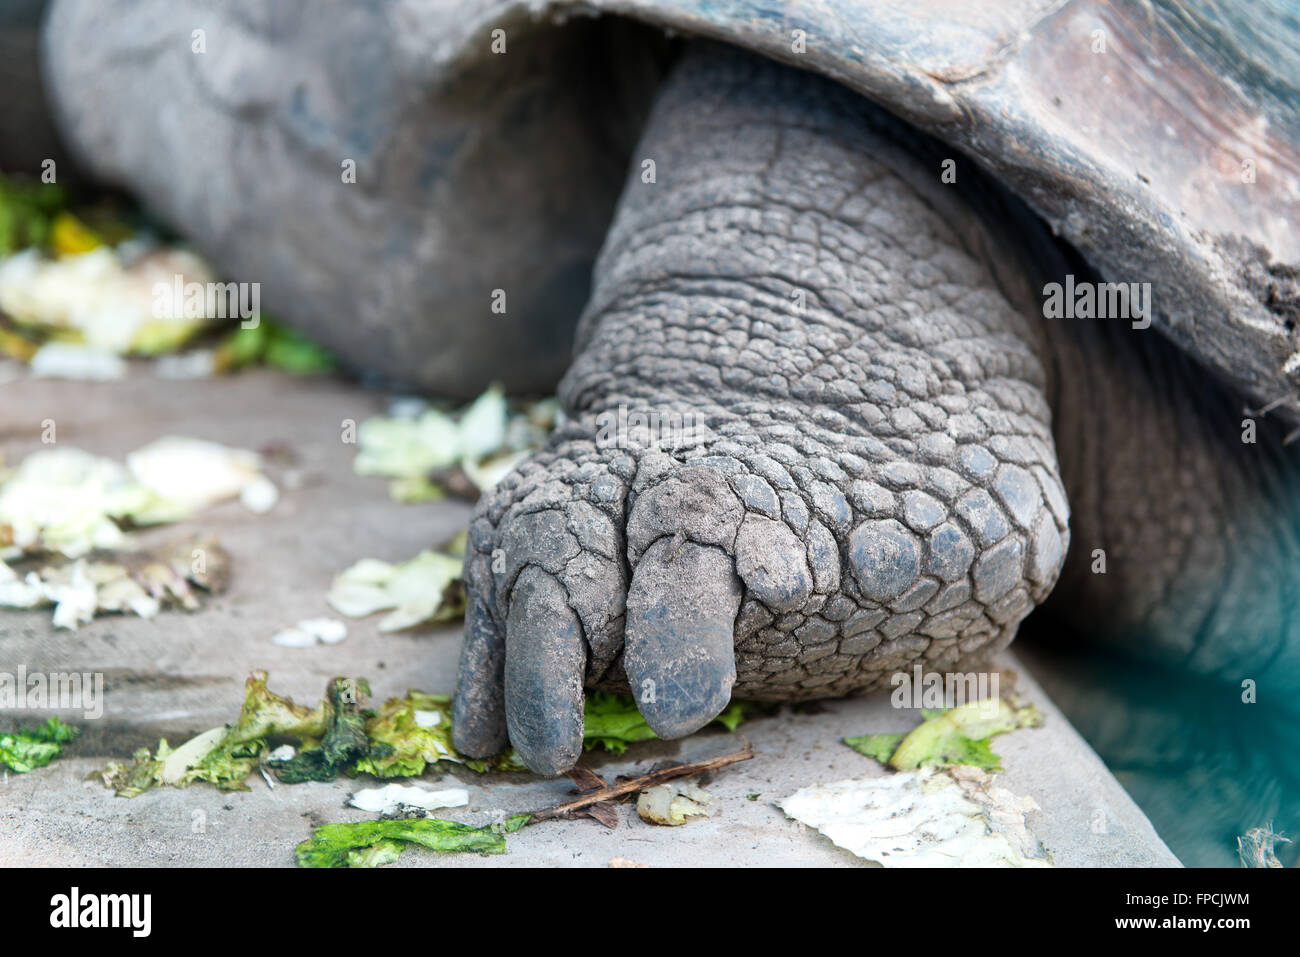 Detail of the foot of a Giant Tortoise from the Aldabra atoll in the Seychelles showing the claws and hard scaly - Stock Image